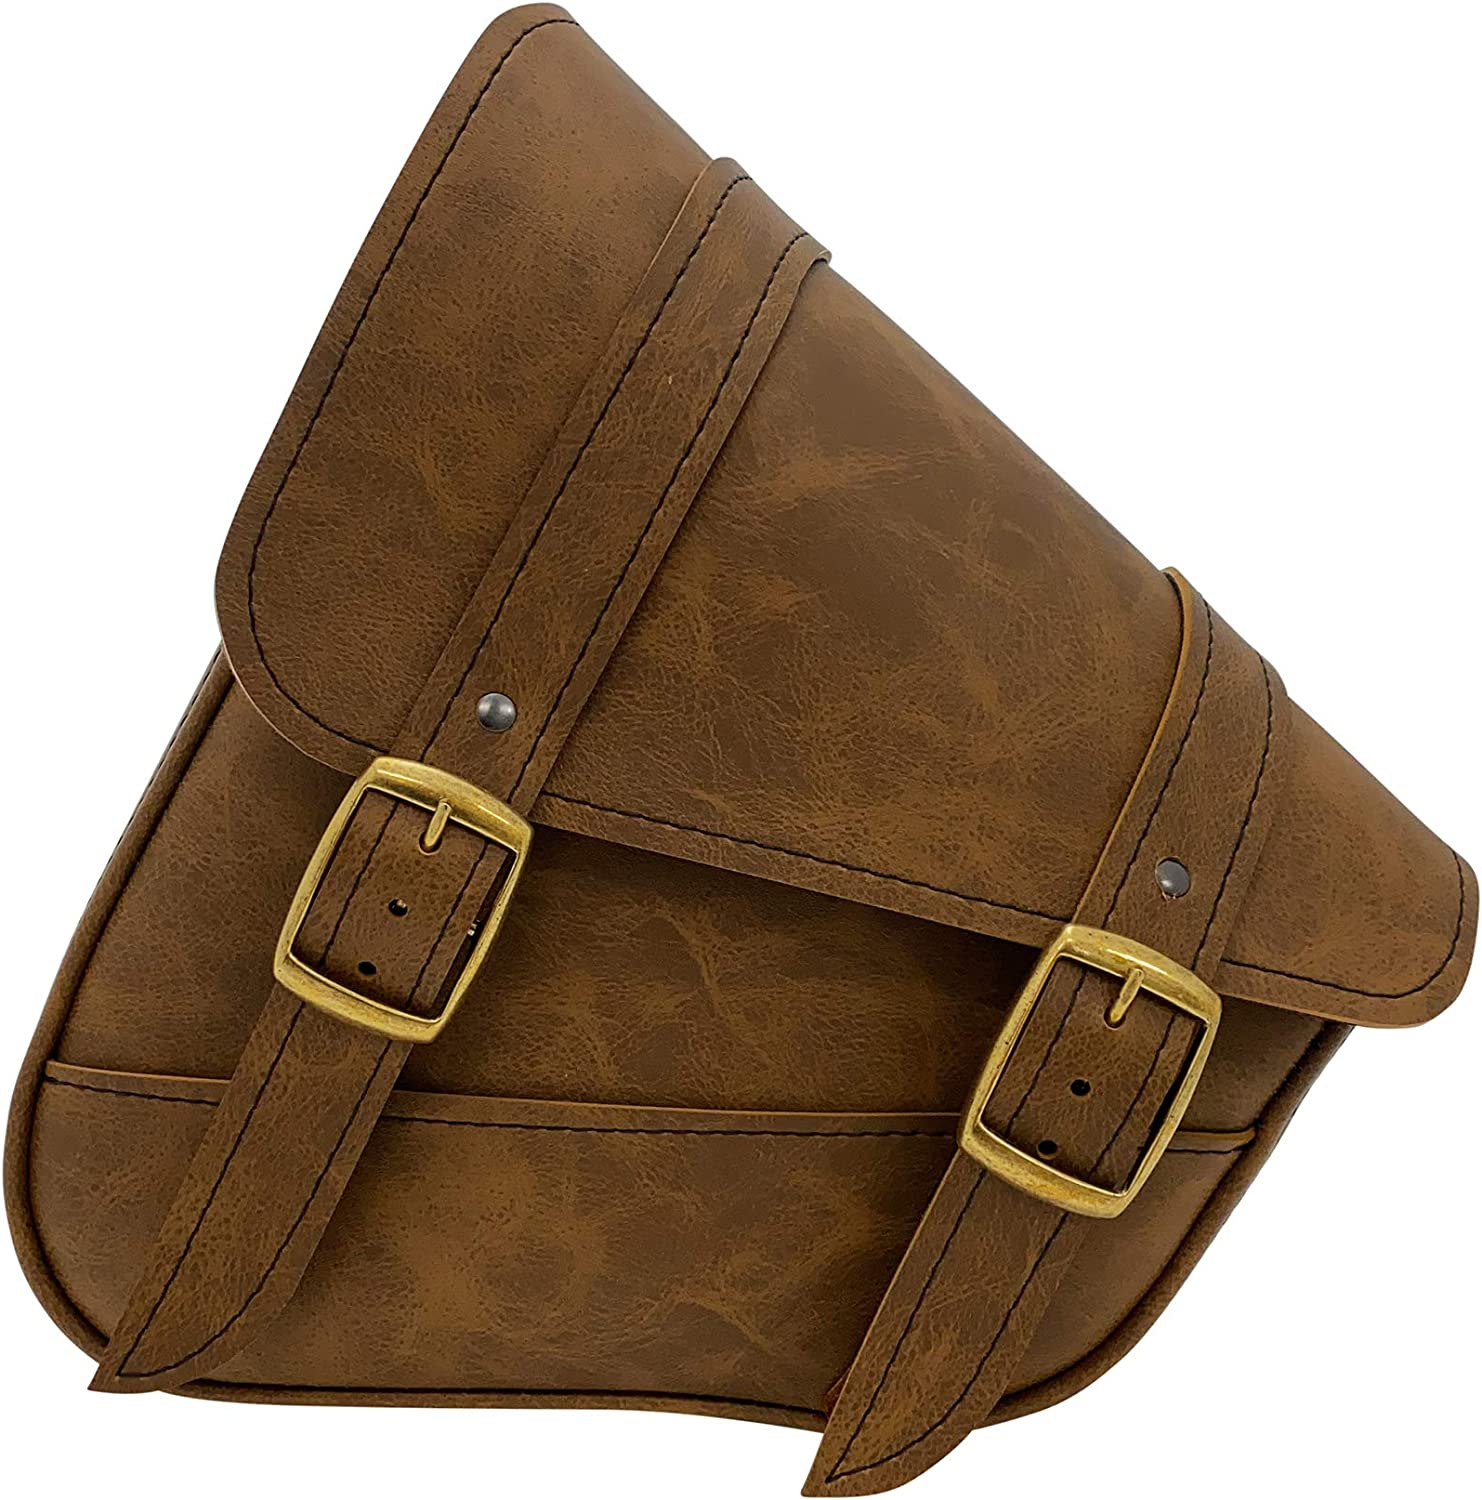 Dowco Willie Many Outlet sale feature popular brands Max Brass Monkey Brown - Softail Bag or Swingarm